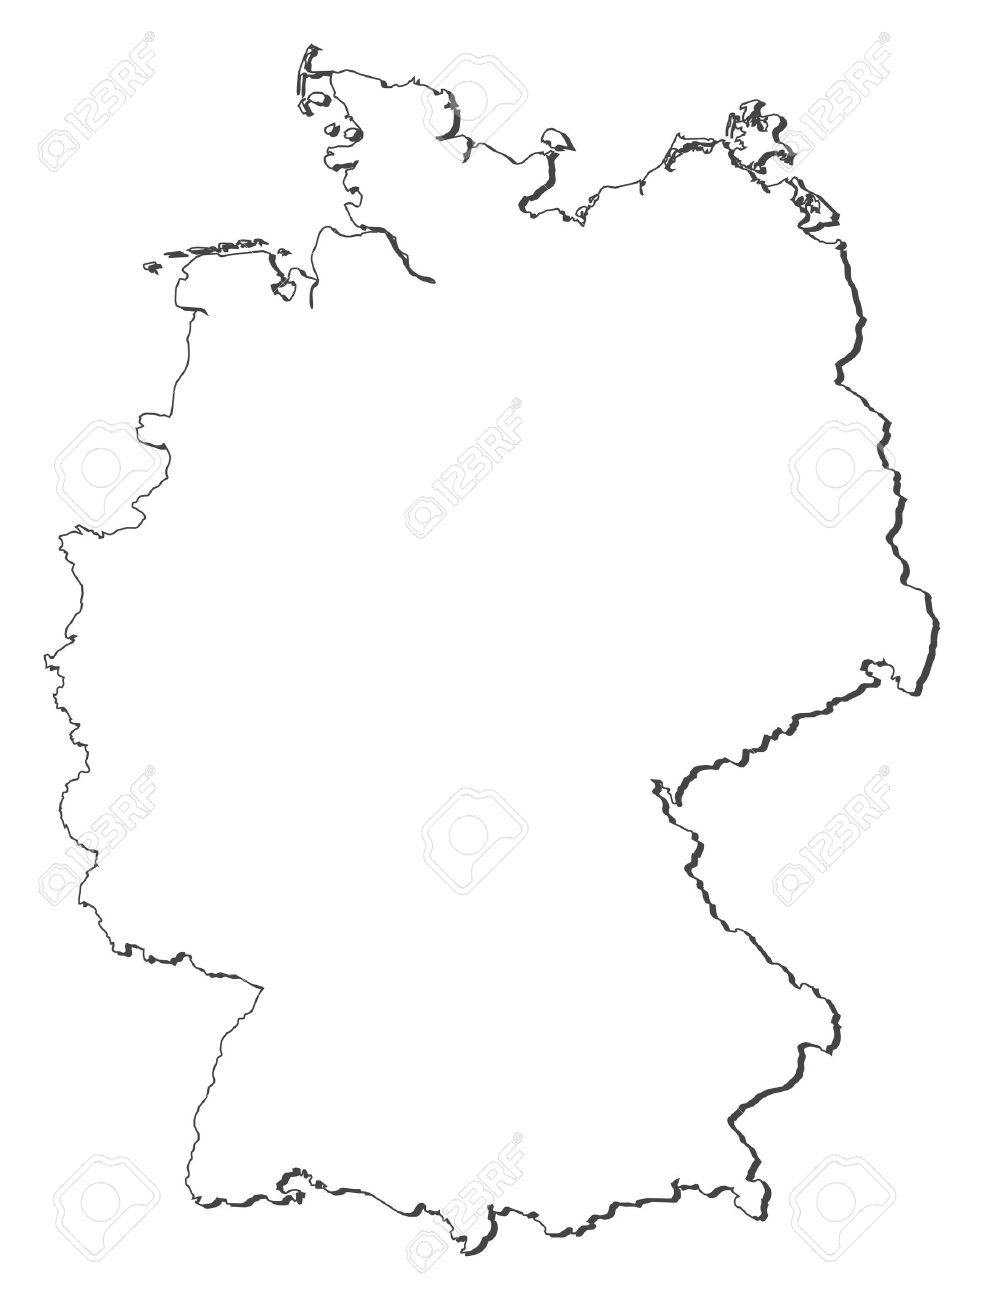 Political map of Germany with the several states. - 11346267